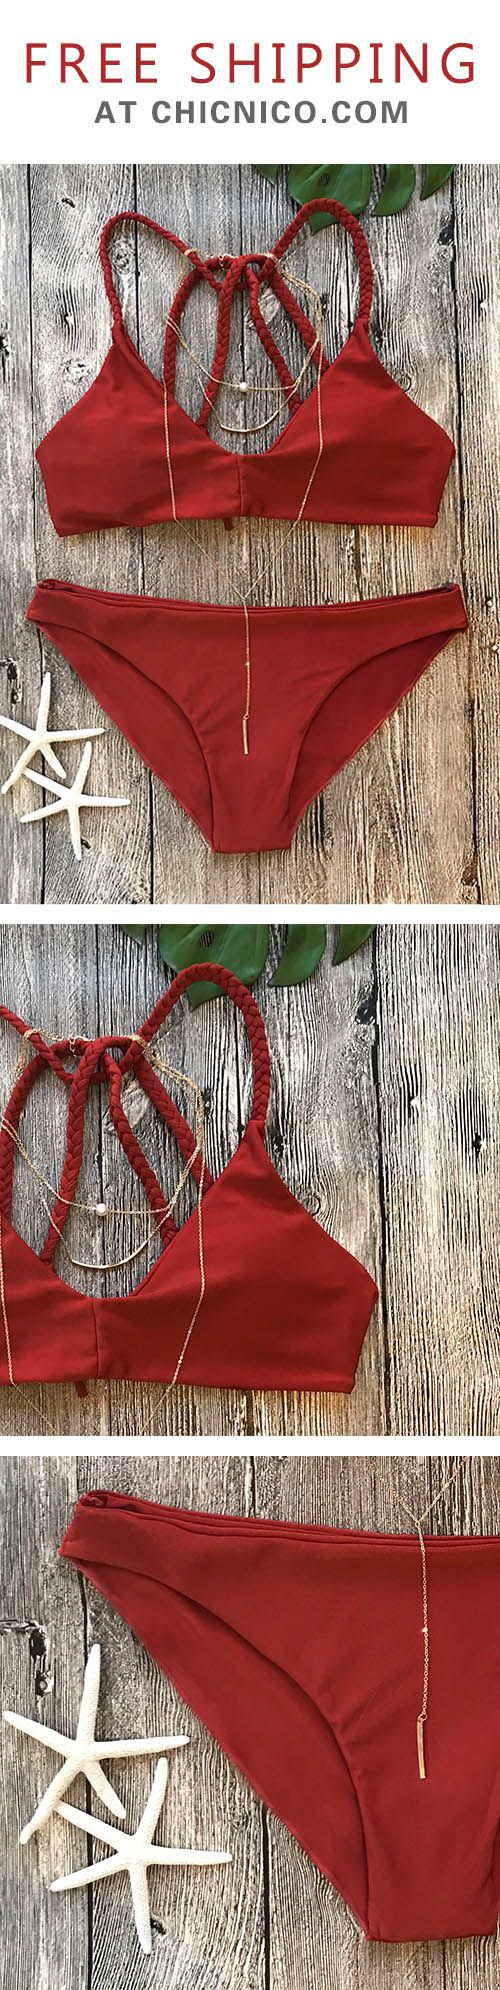 $23.99 for hot days at CHICNICO.com ! It is perfect for the beach and a total stand out piece in the coming summer.  Cute Bandeau Red Bikini Set Swimsuit